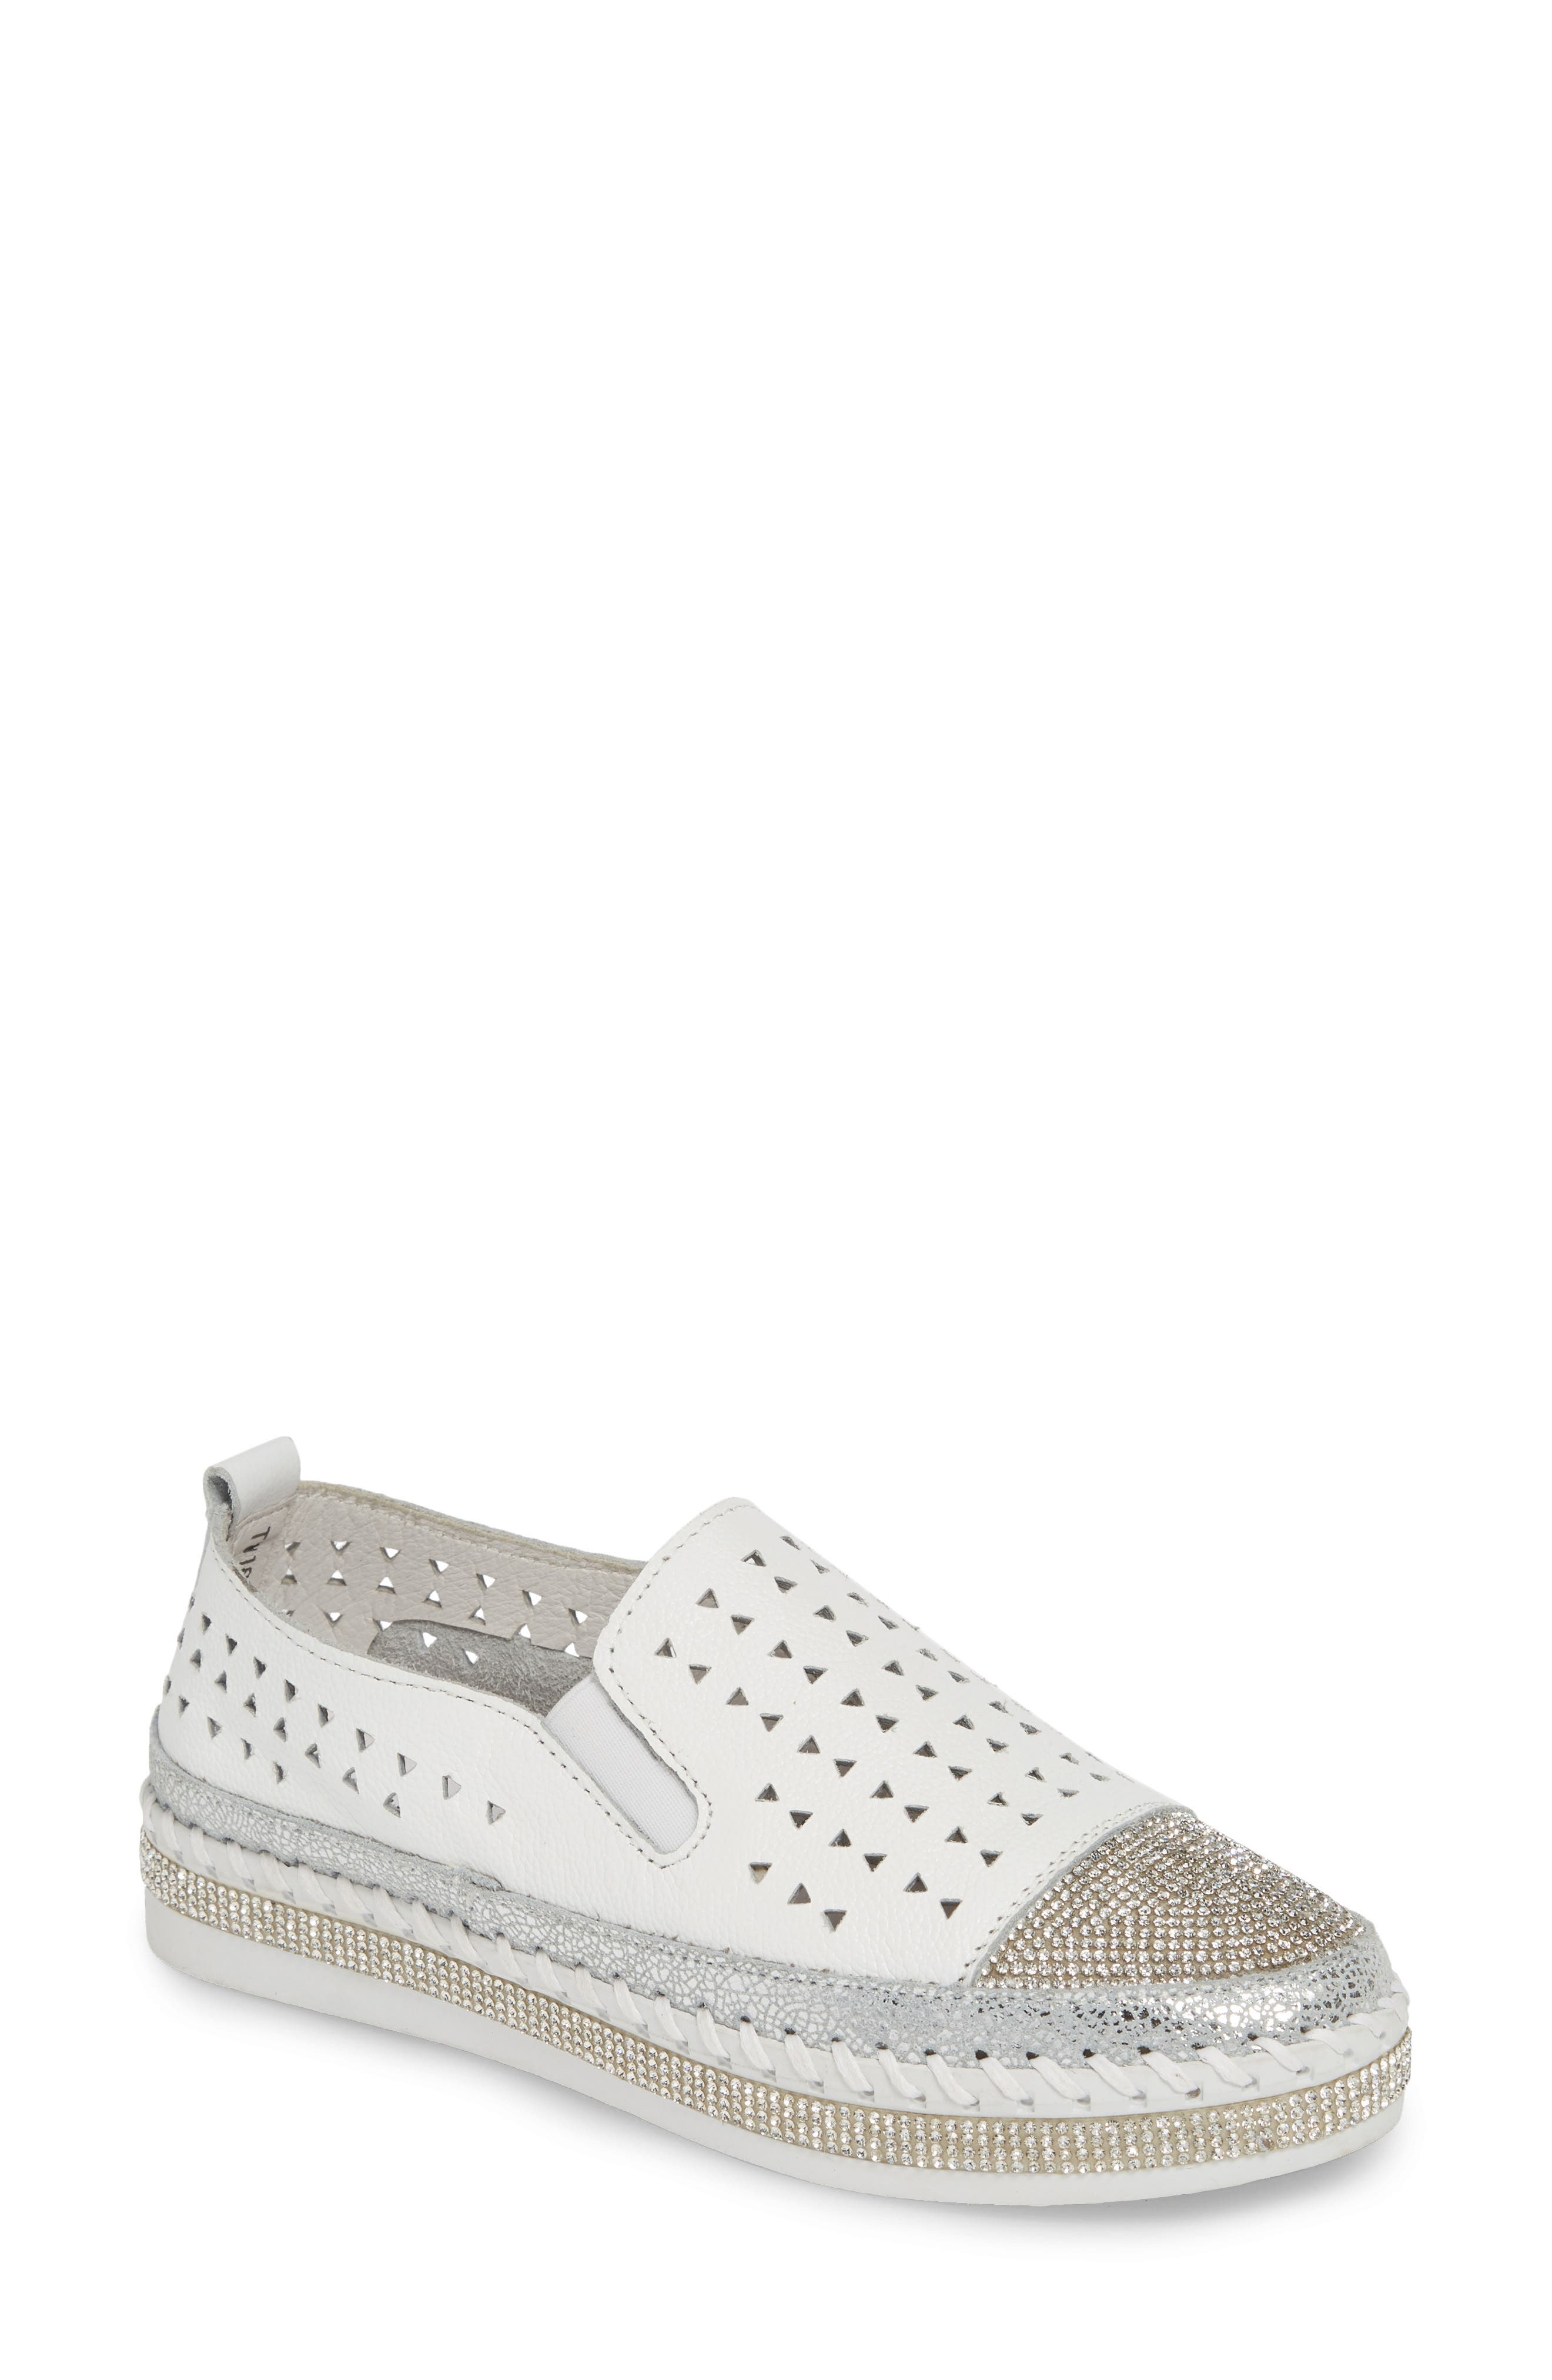 TW187 Perforated Slip-On Sneaker